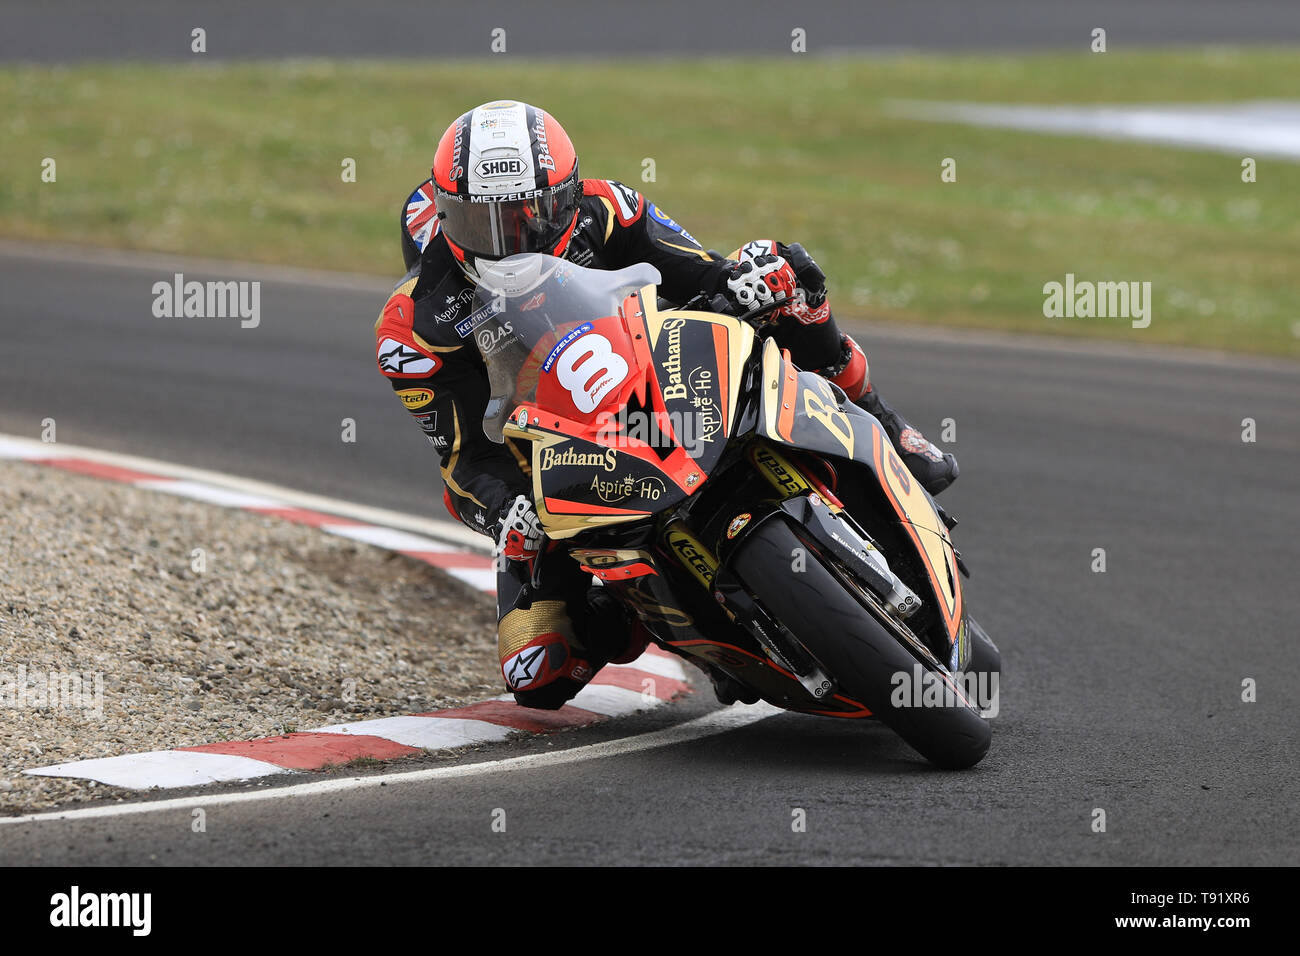 Portrush, Northern Ireland. 16th May, 2019. International North West 200 Motorcycle road racing, Thursday practice and evening racing; Michael Rutter was 7th fastest on the Bathams Racing BMW during the SuperStock qualifying session Credit: Action Plus Sports/Alamy Live News - Stock Image